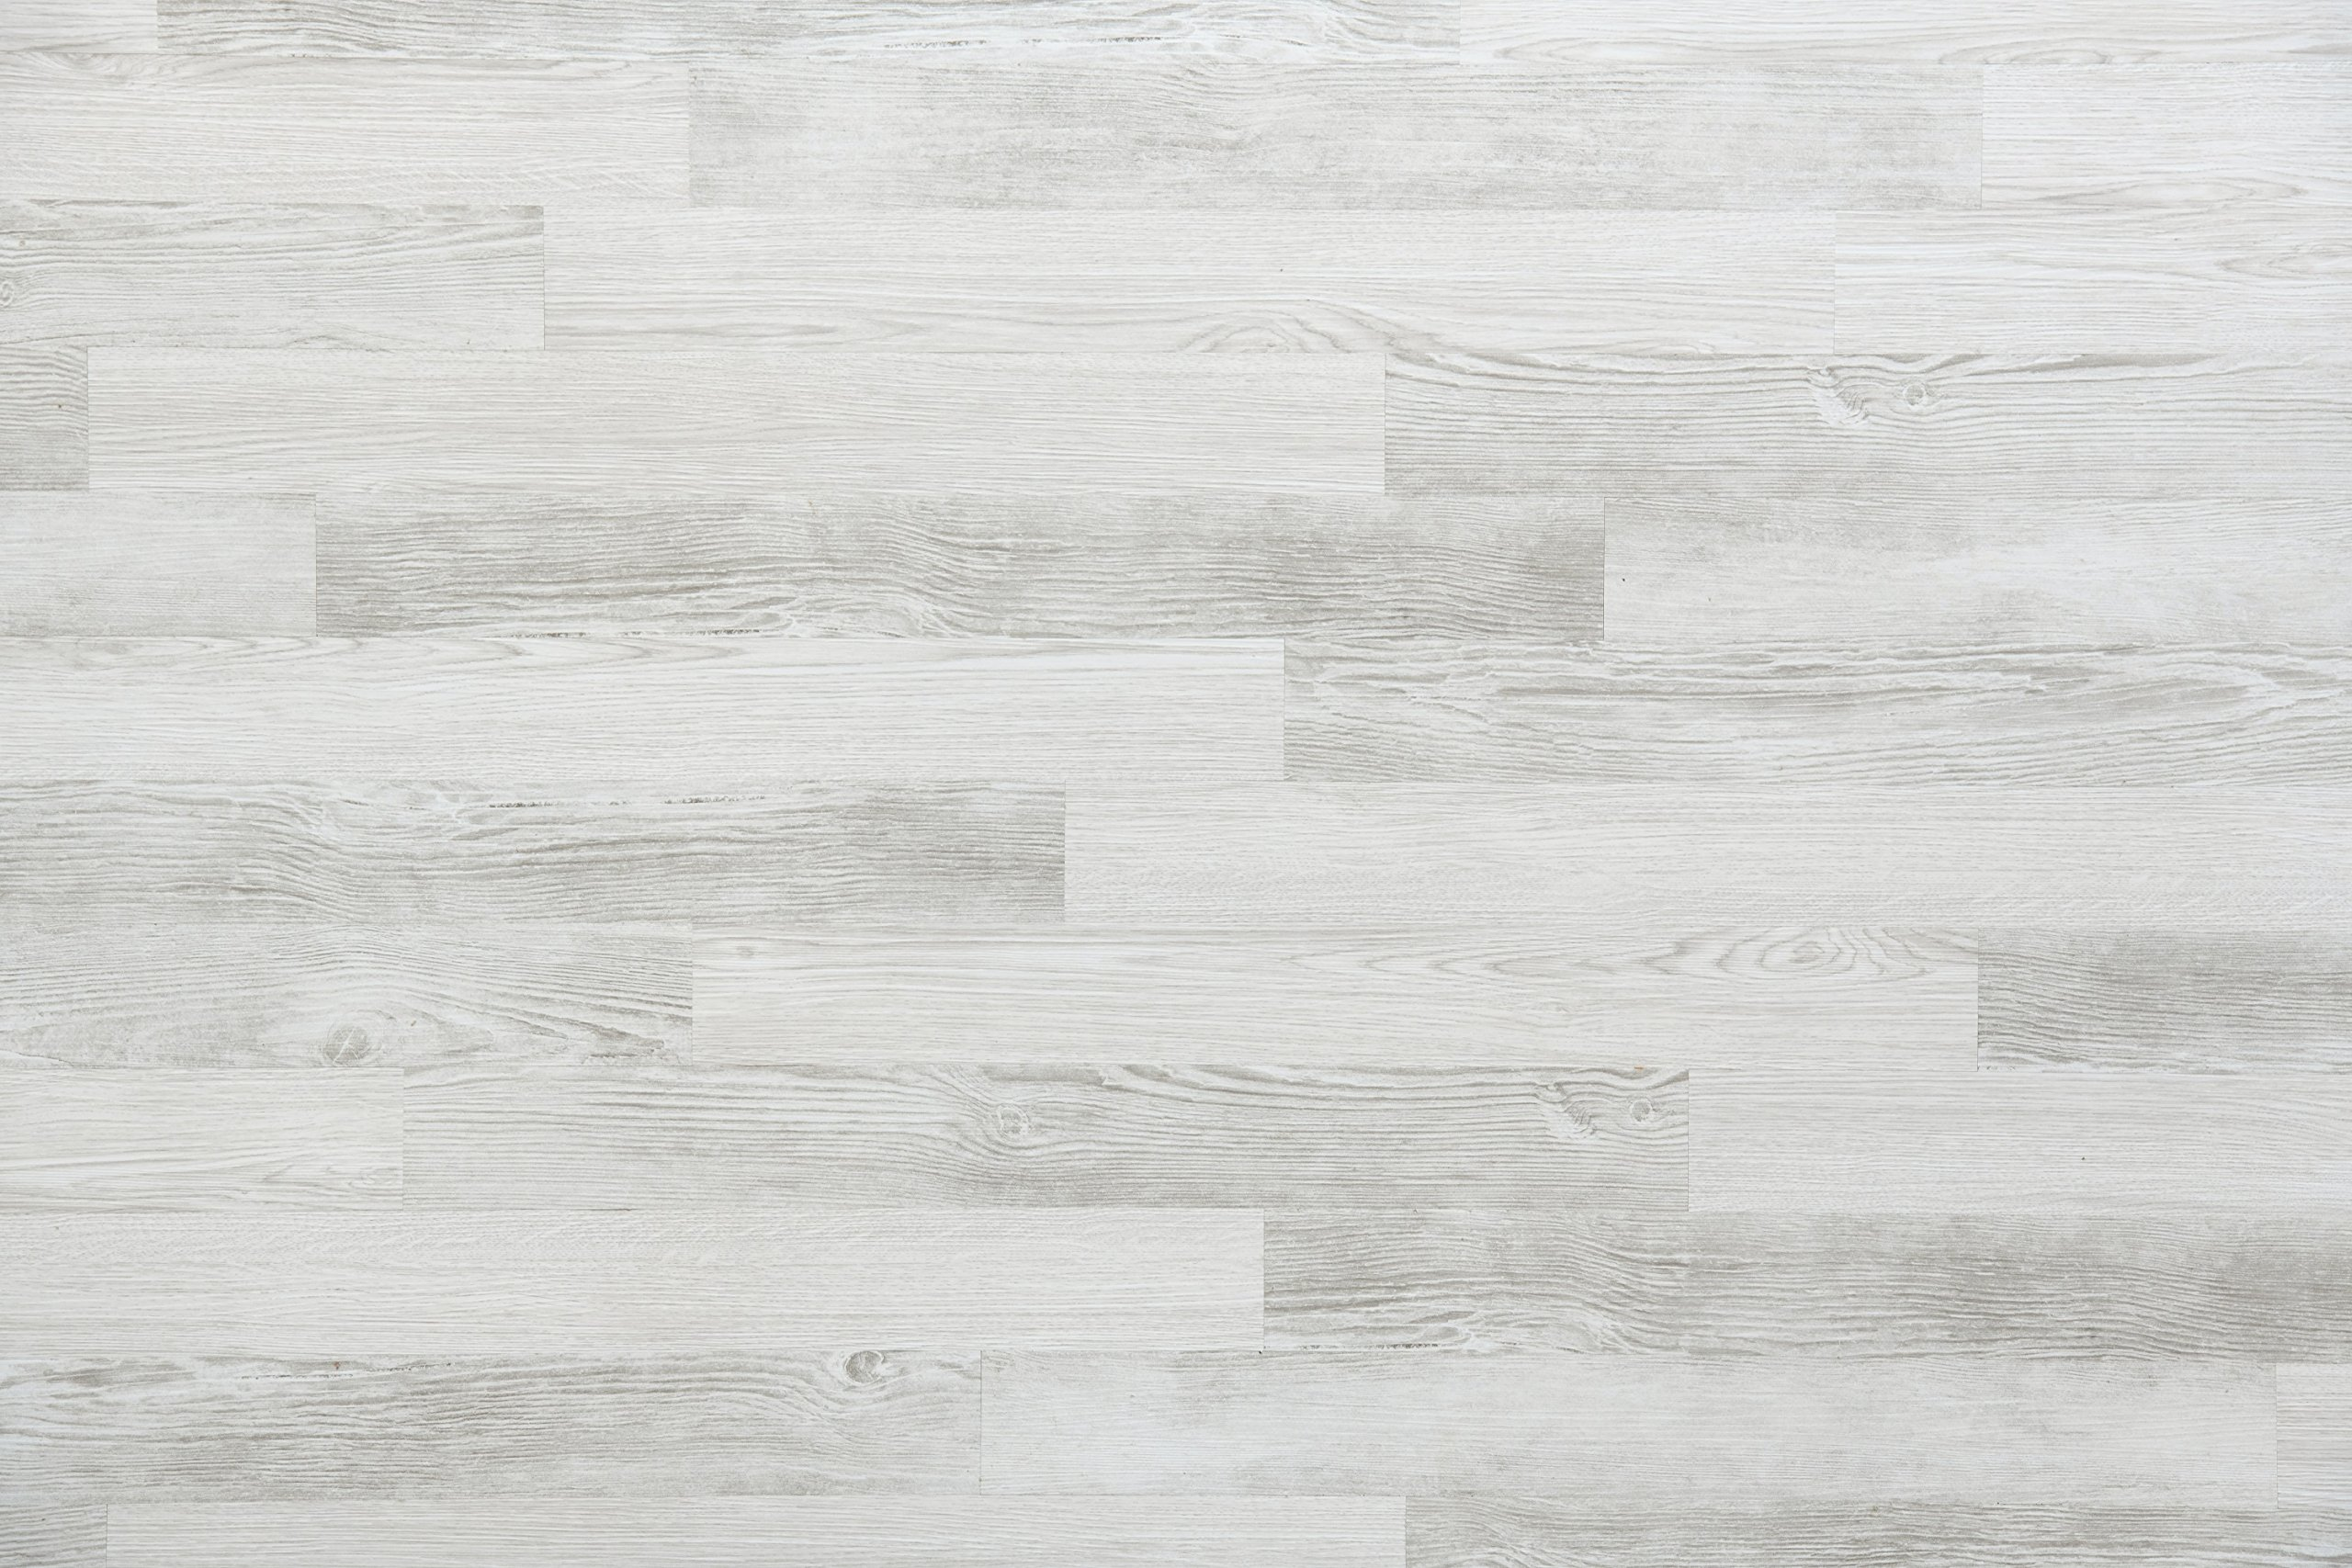 Nance Industries E-Z Wall Peel and Press Vinyl Wall Planks 4''x36'' White Wash Barnwood Colors, 20 Planks by Nance Industries